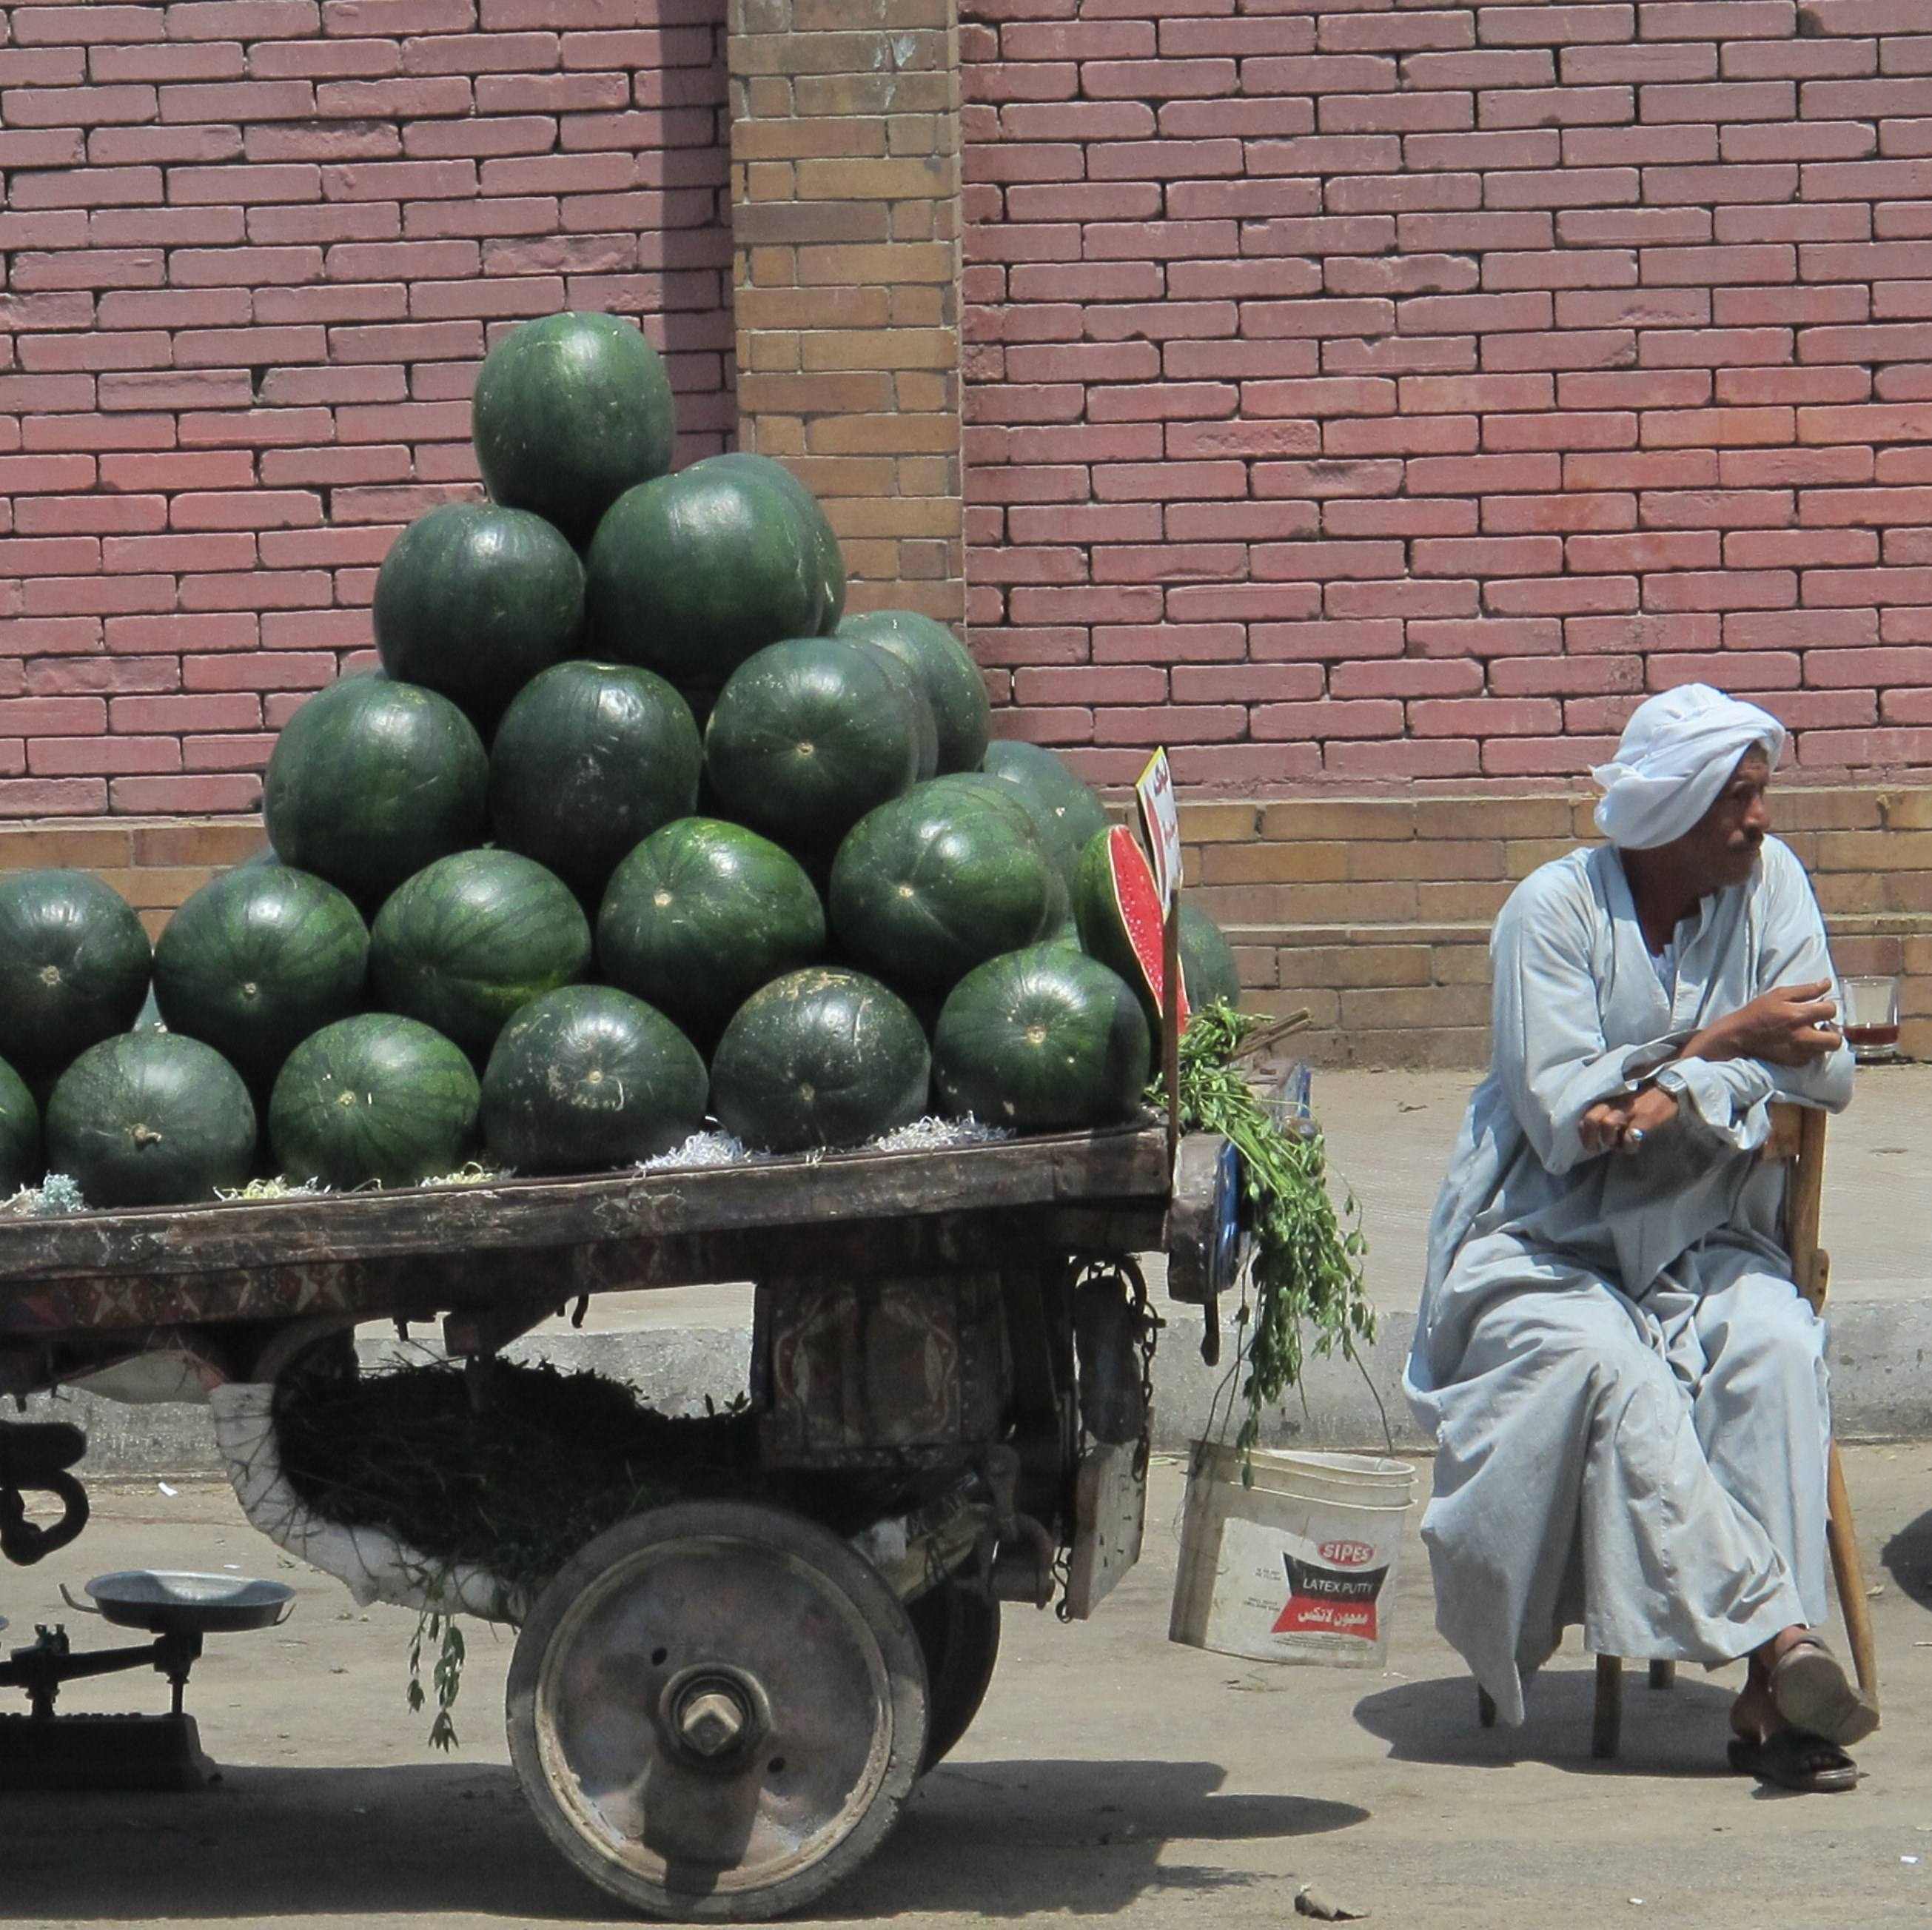 Watermelon stand, Cairo, Egypt